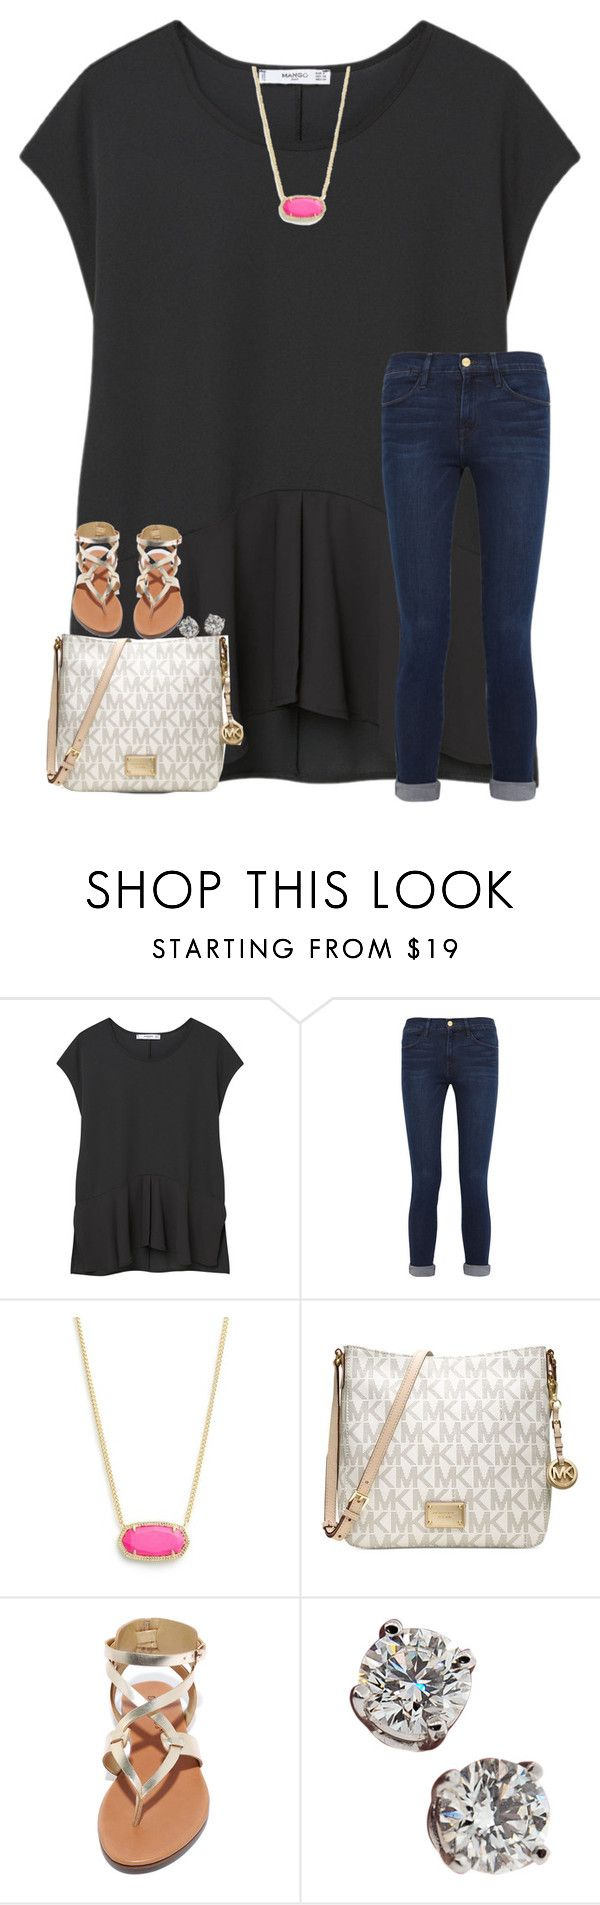 """When do you go back to school?"" by sweettoothegj ❤ liked on Polyvore featuring MANGO, Frame Denim, Kendra Scott, Michael Kors, Breckelle's and Tiffany & Co."